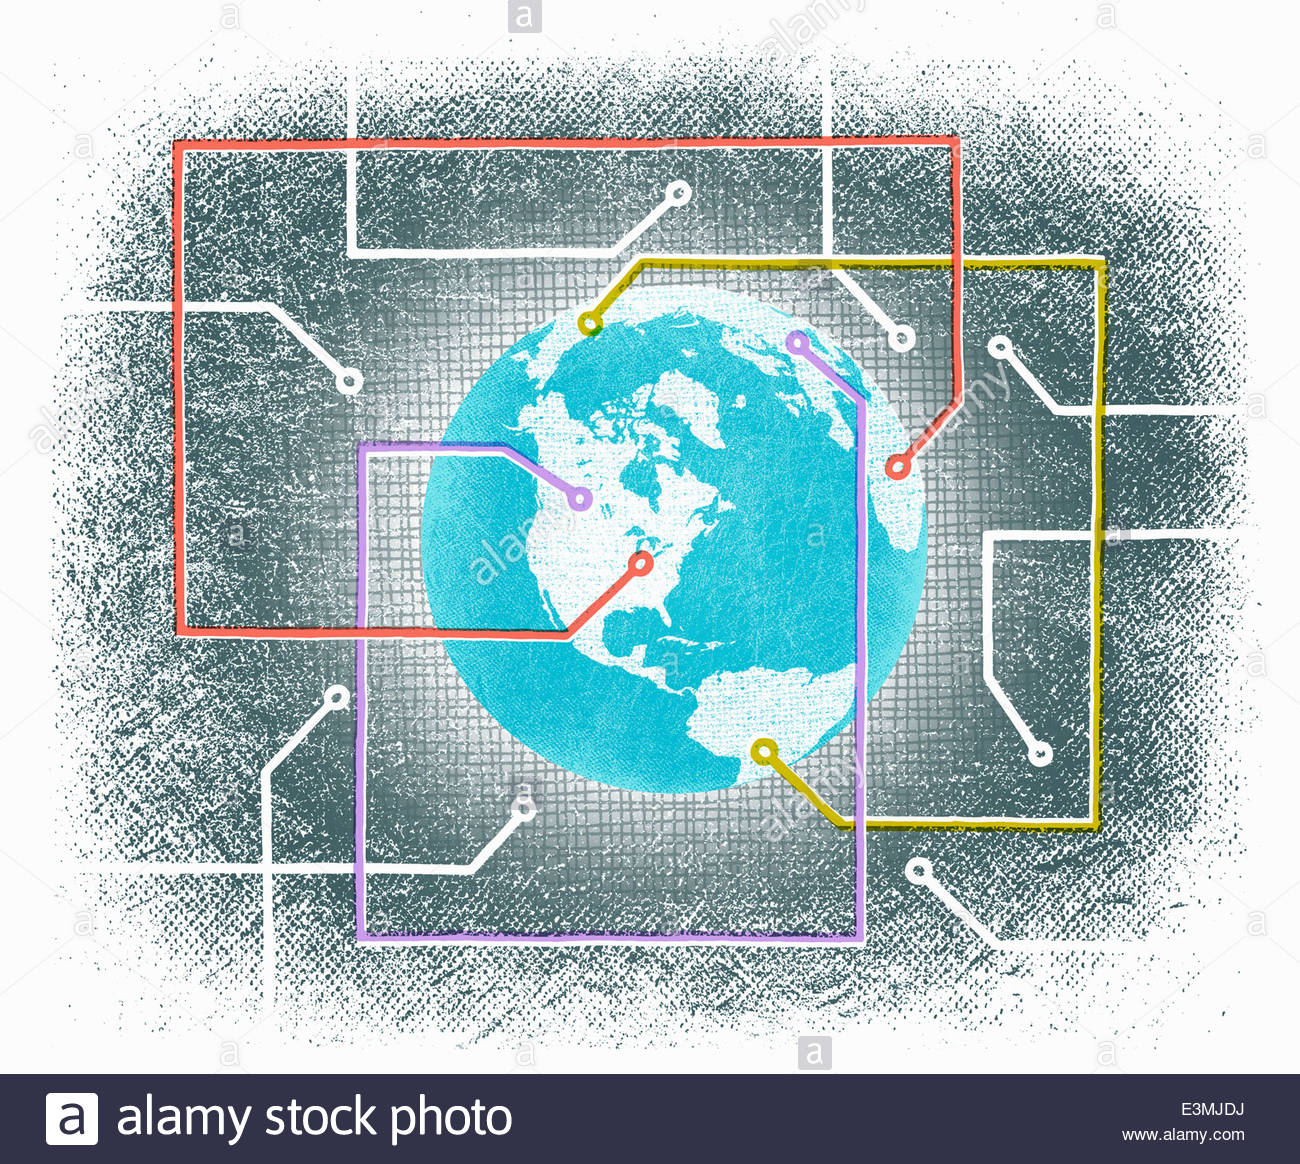 Circuit board connections over globe - Stock Image